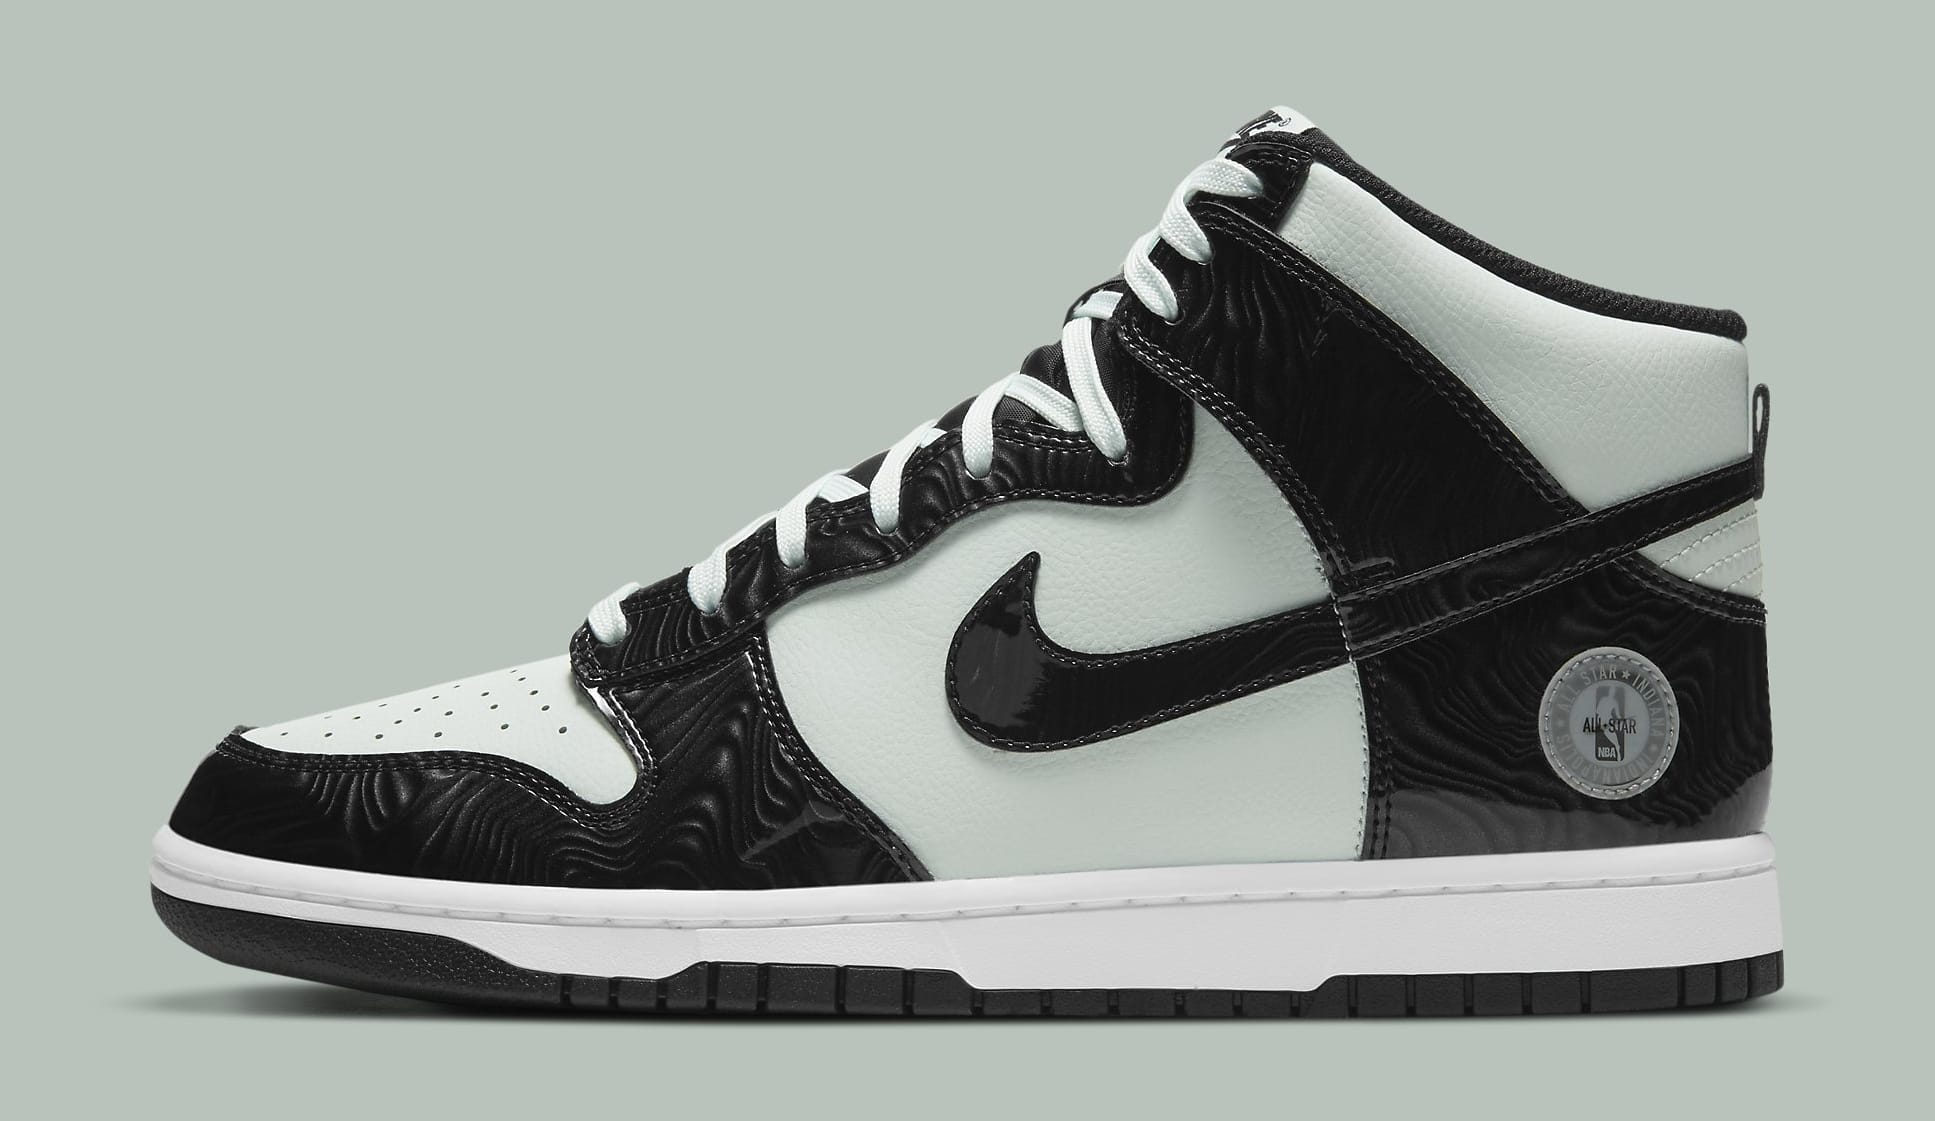 Nike Dunk High 'Barely Green' DD1398-300 Lateral